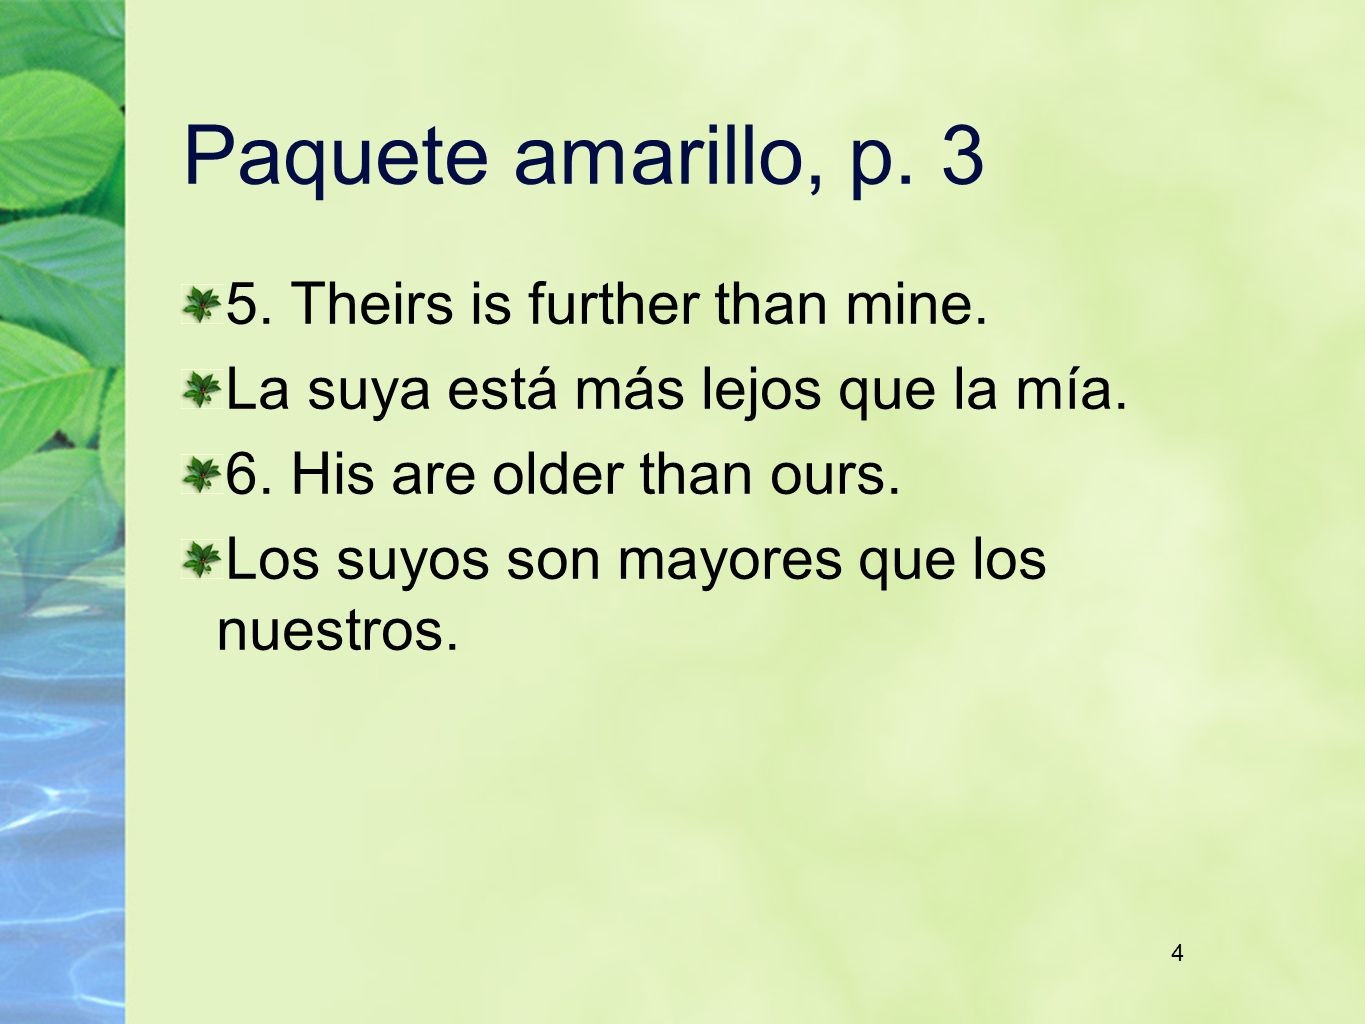 4 Paquete amarillo, p. 3 5. Theirs is further than mine. La suya está más lejos que la mía. 6. His are older than ours. Los suyos son mayores que los